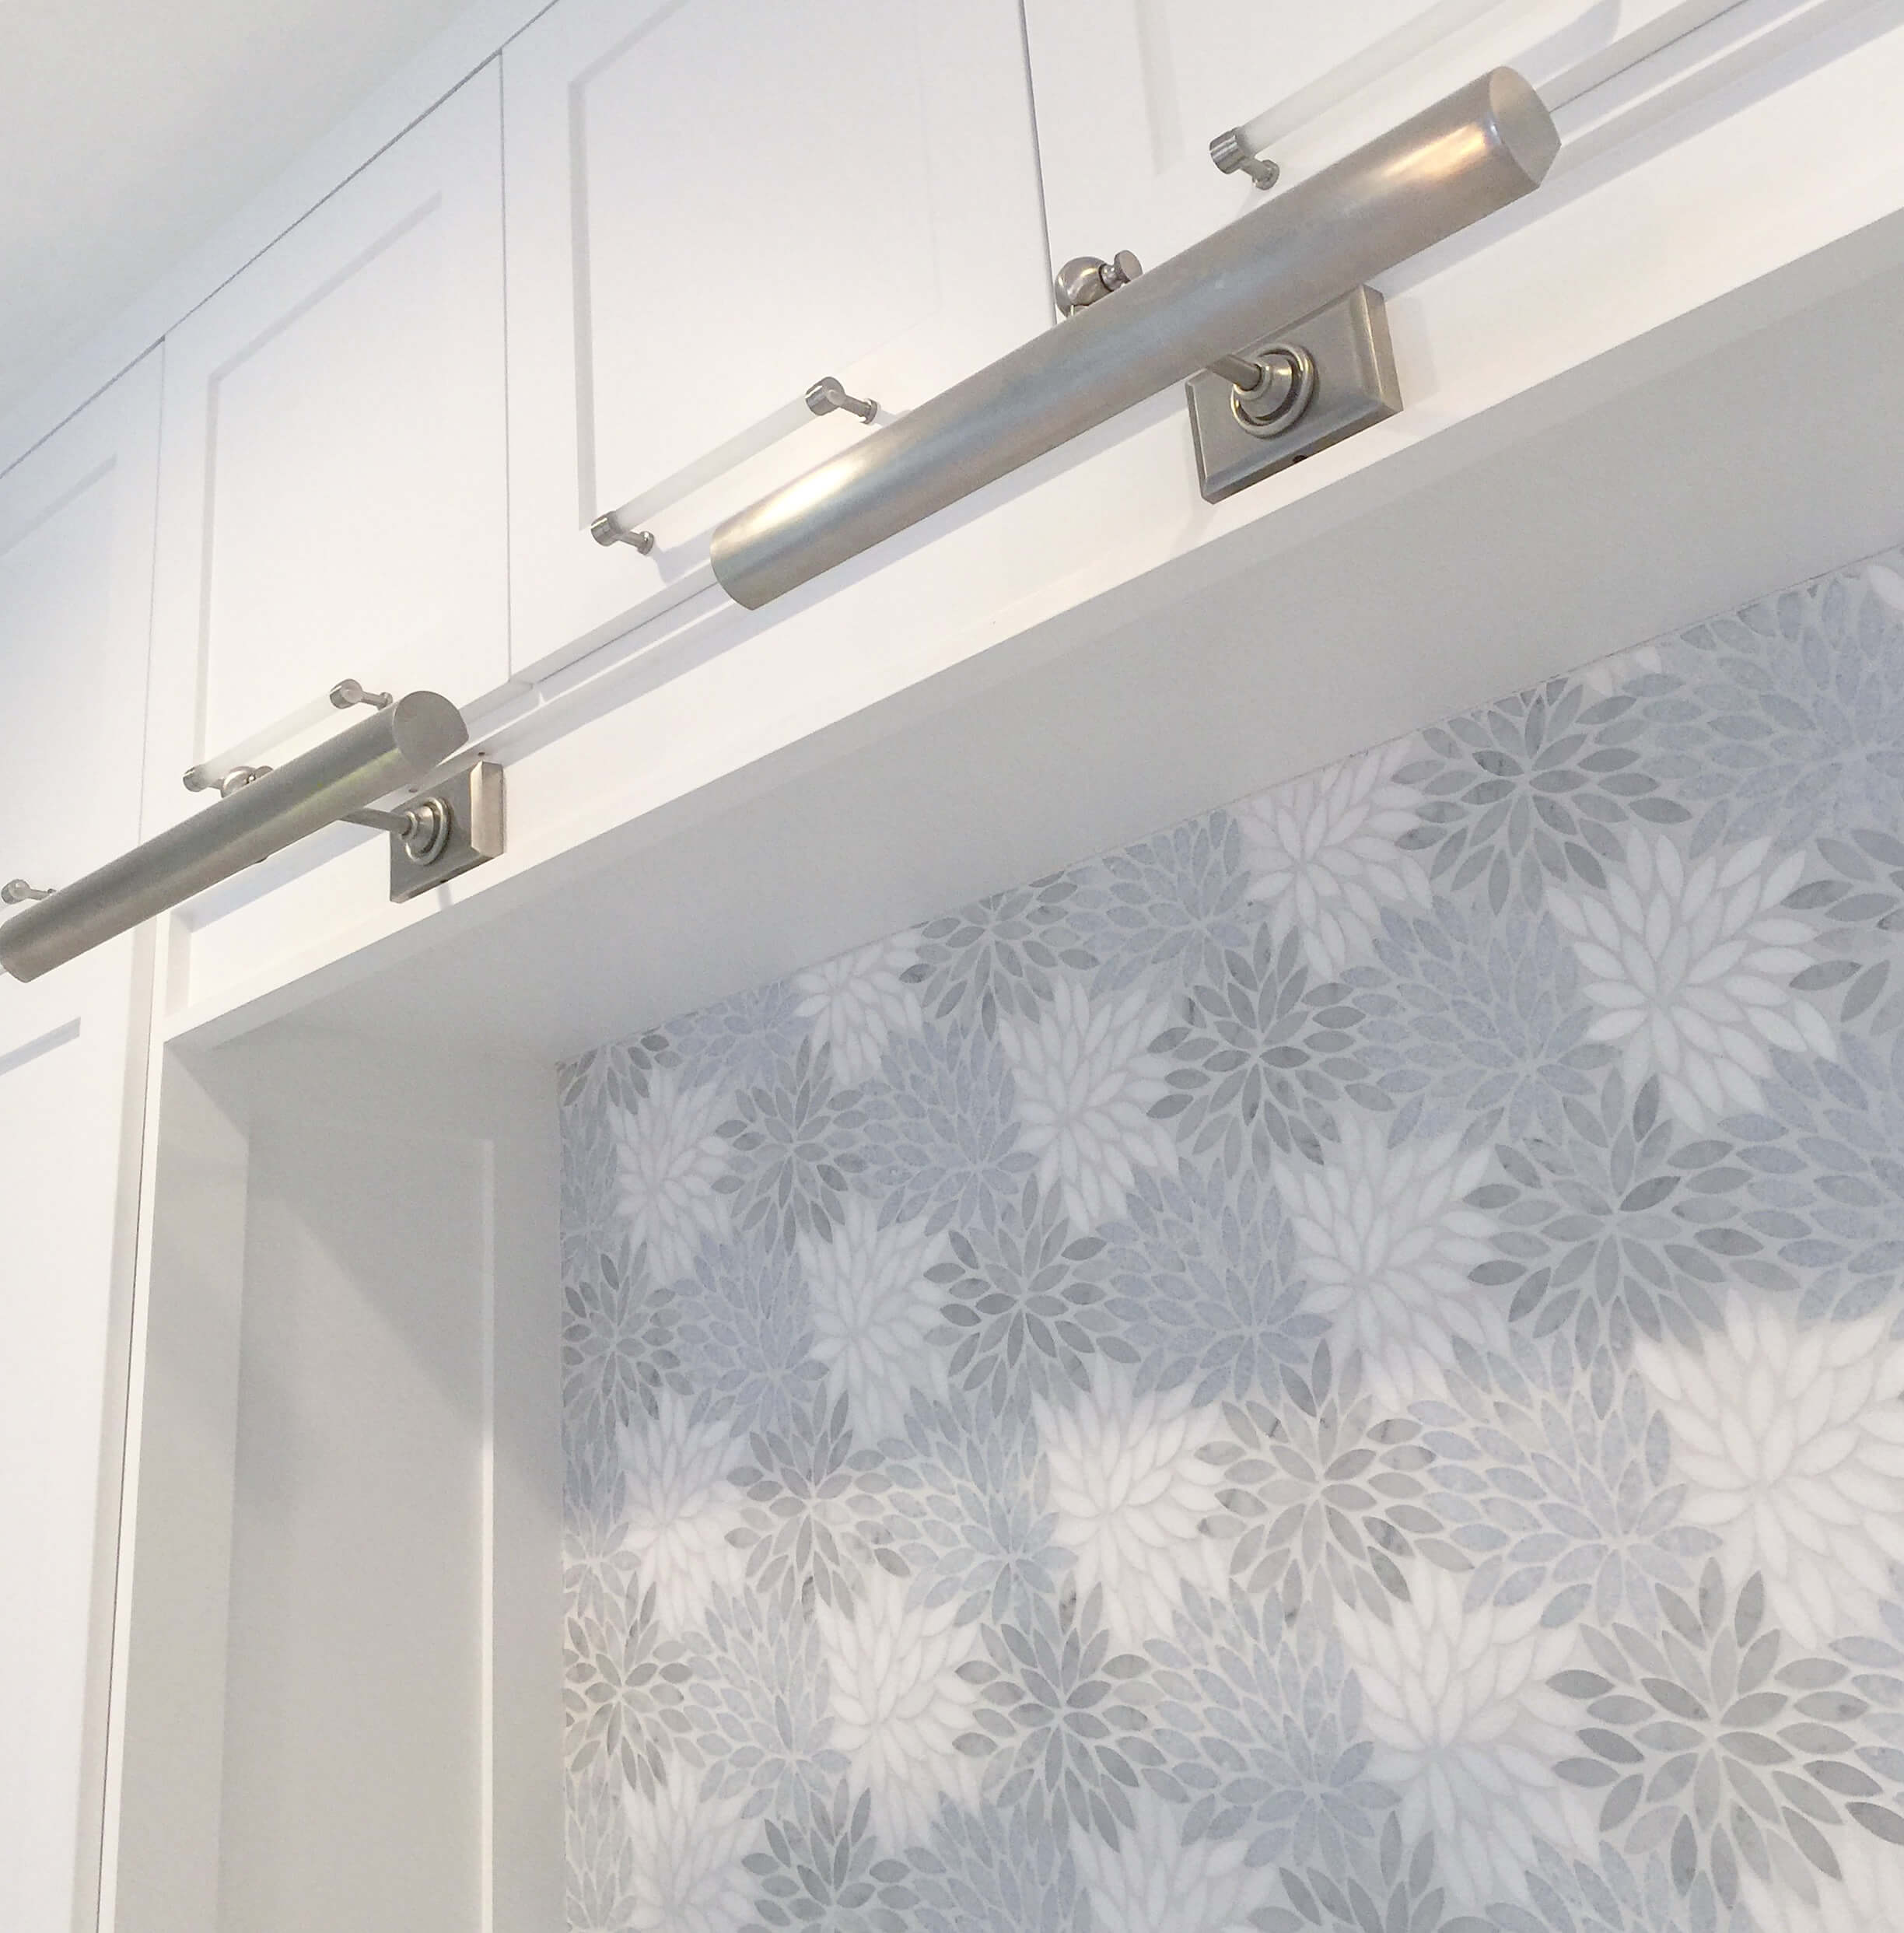 Satin nickel picture lights with marble mosaic backsplash from Artistic Tile